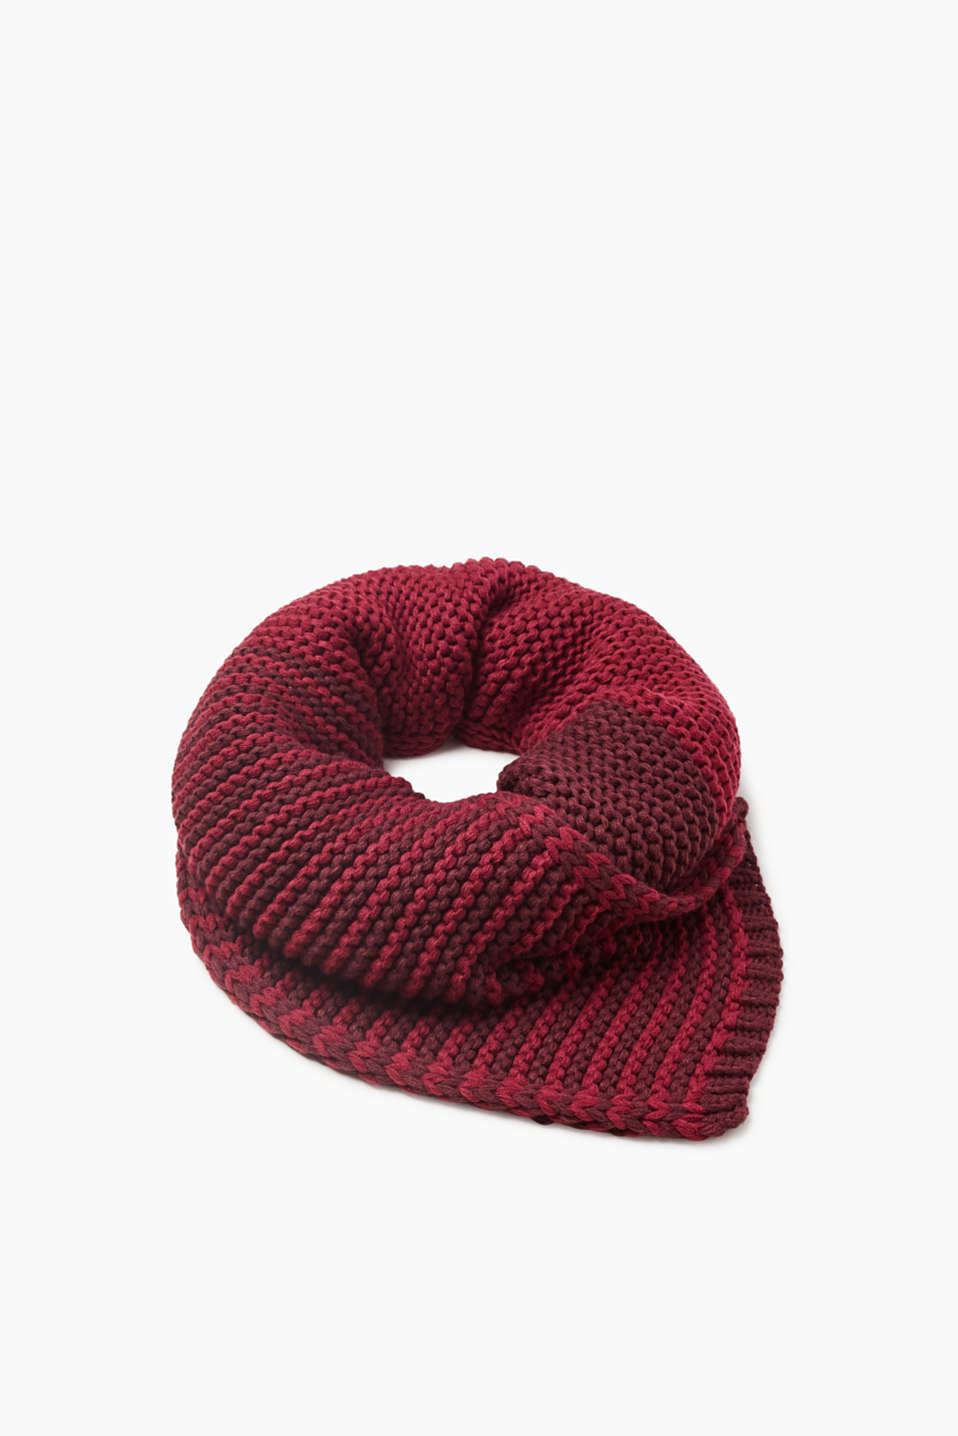 We love knitwear! The two-tone 3D knit yarn makes this scarf a favourite for the cold season.